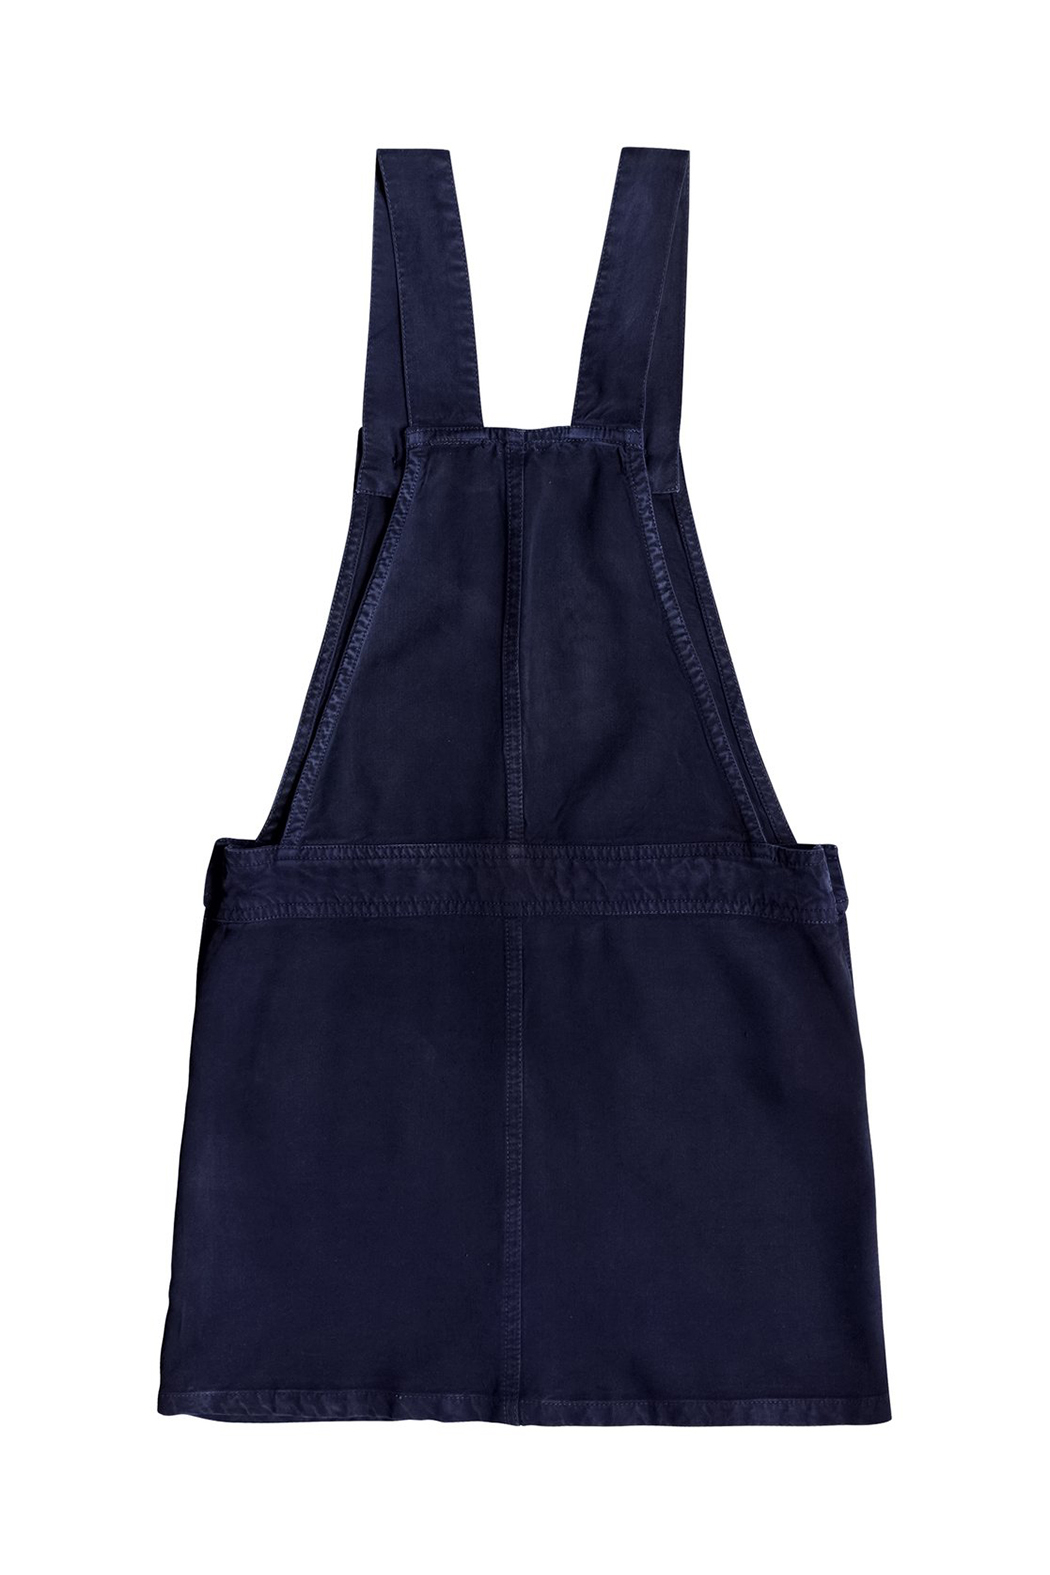 Roxy Summers End Dungaree Dress - Front Full Image